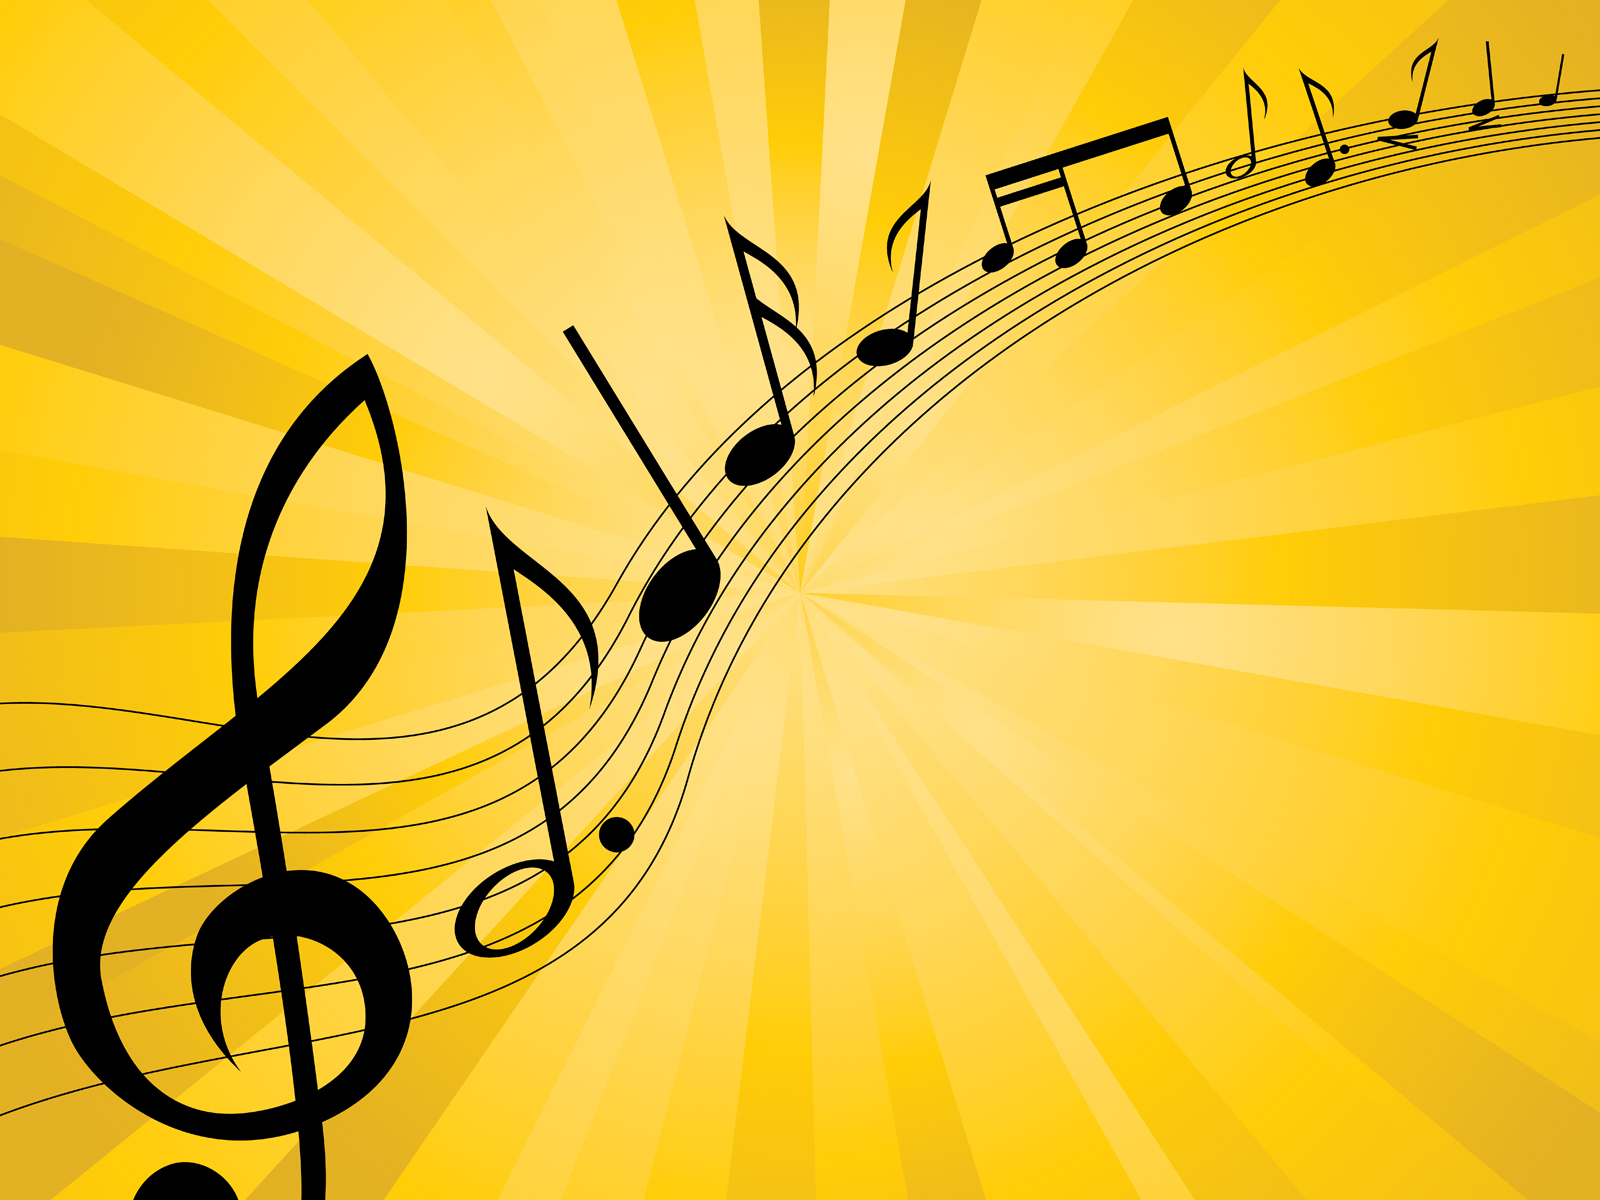 Introductions-Music-Melody-Backgrounds.jpg